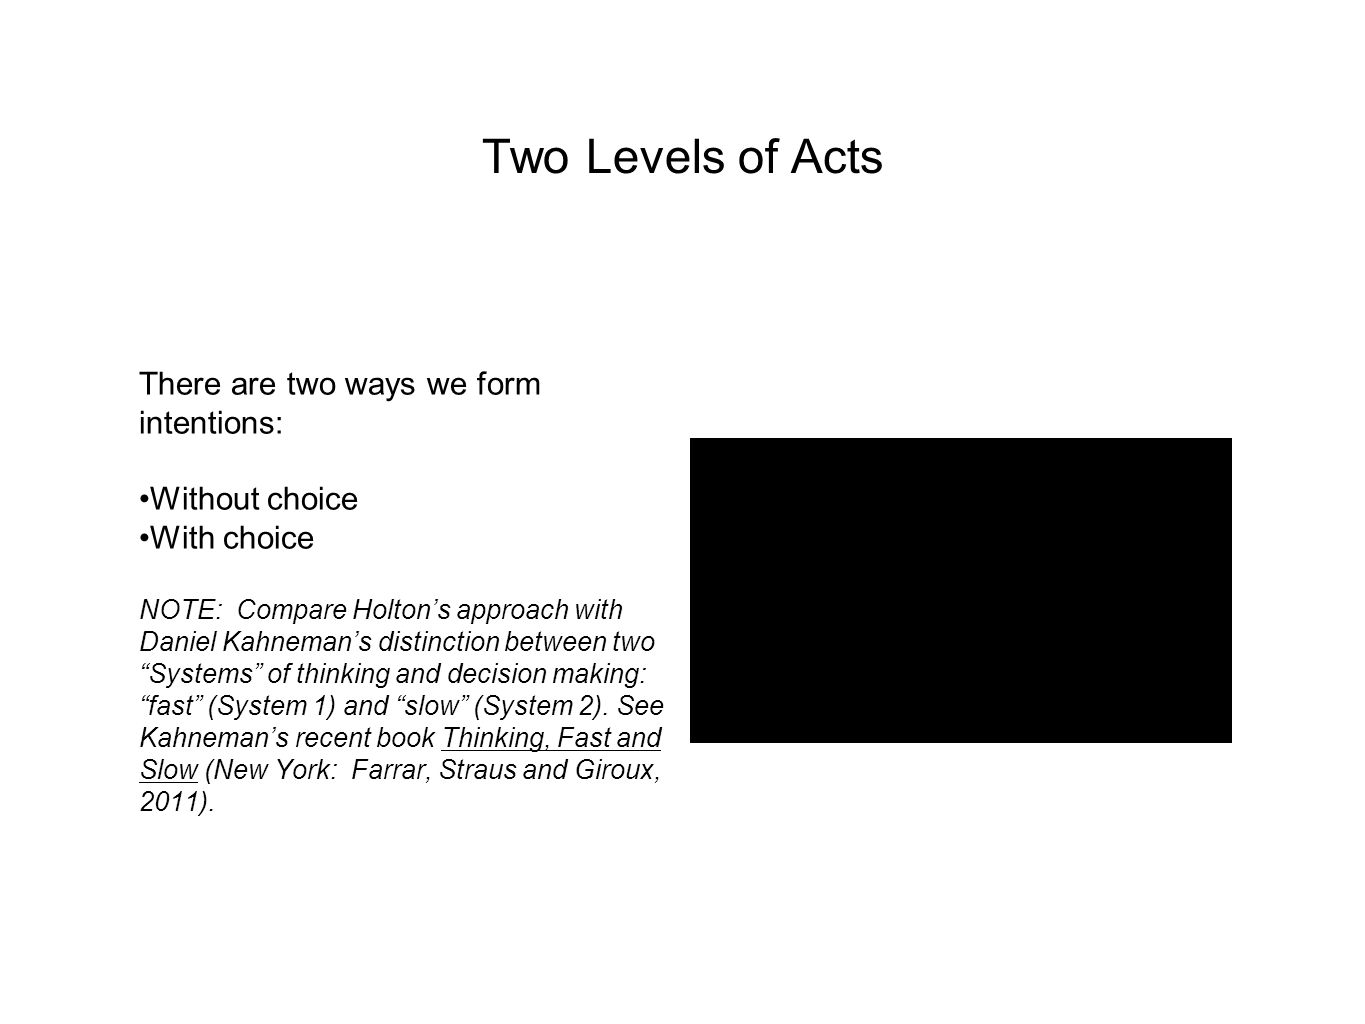 Two Levels of Acts There are two ways we form intentions: